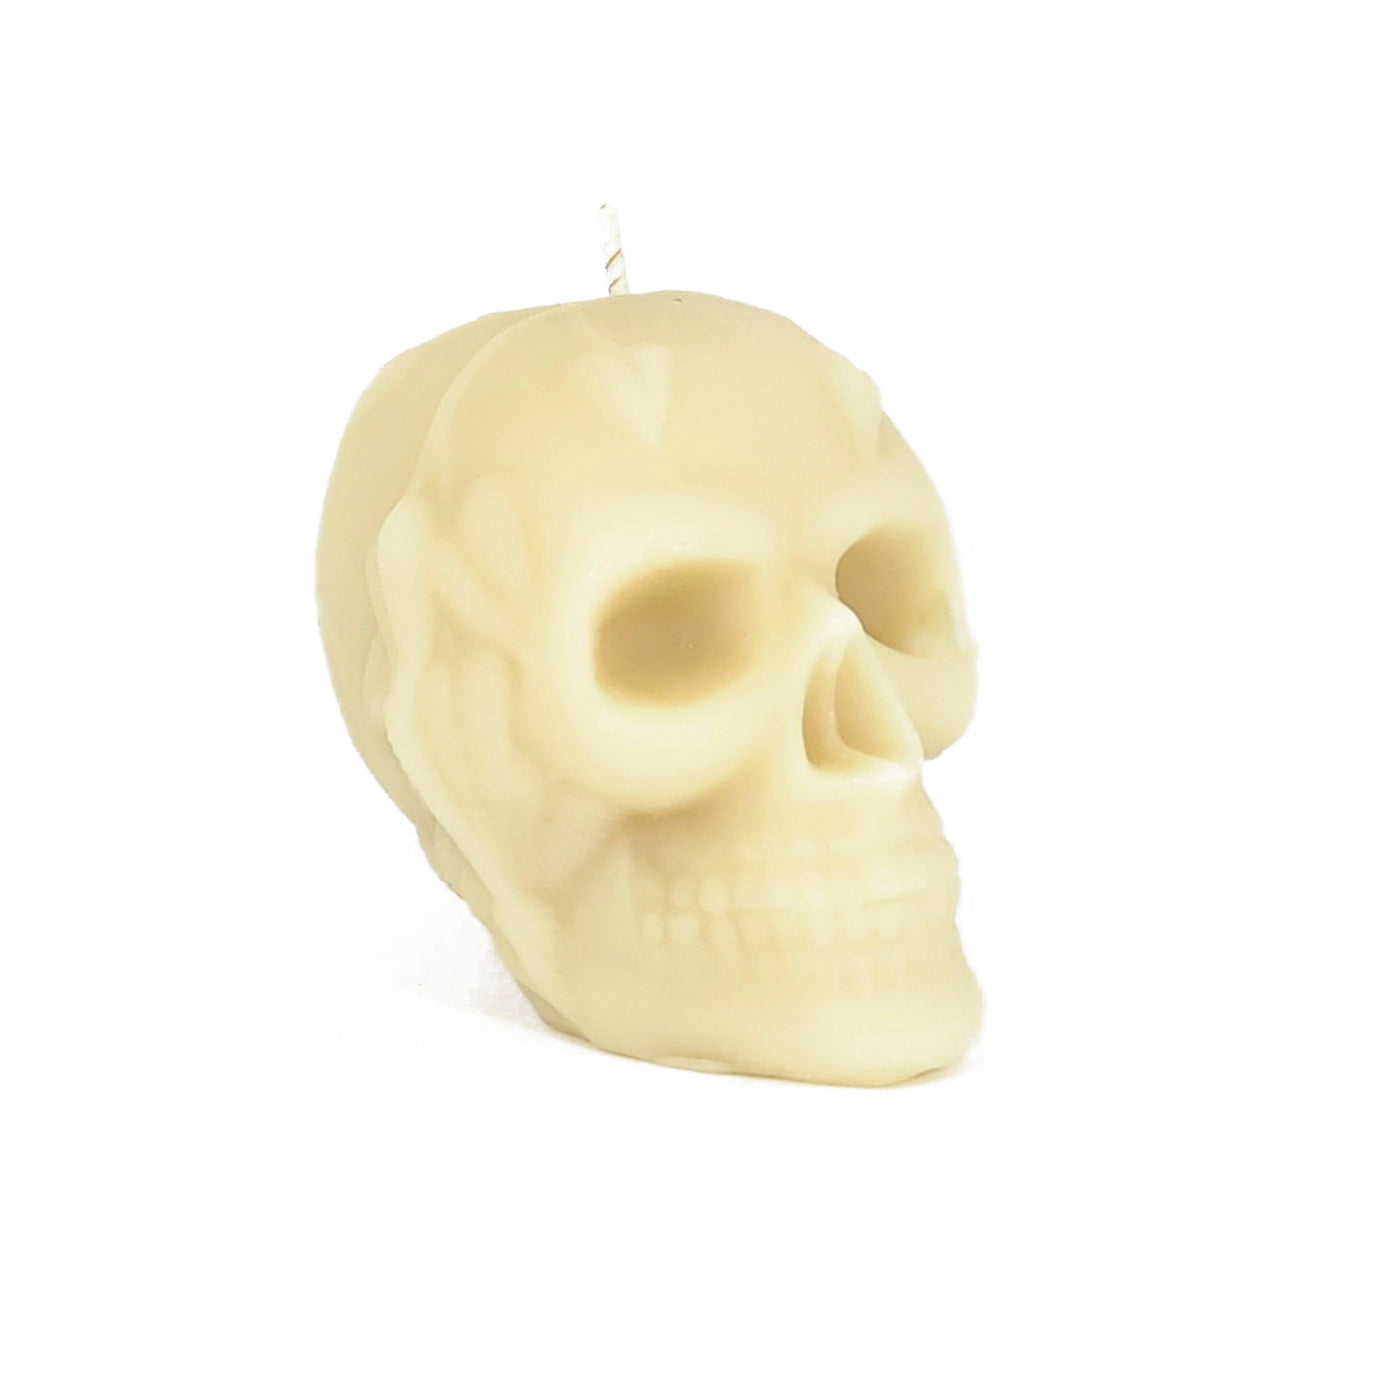 A World of True Imagination... launching our Skull Candle